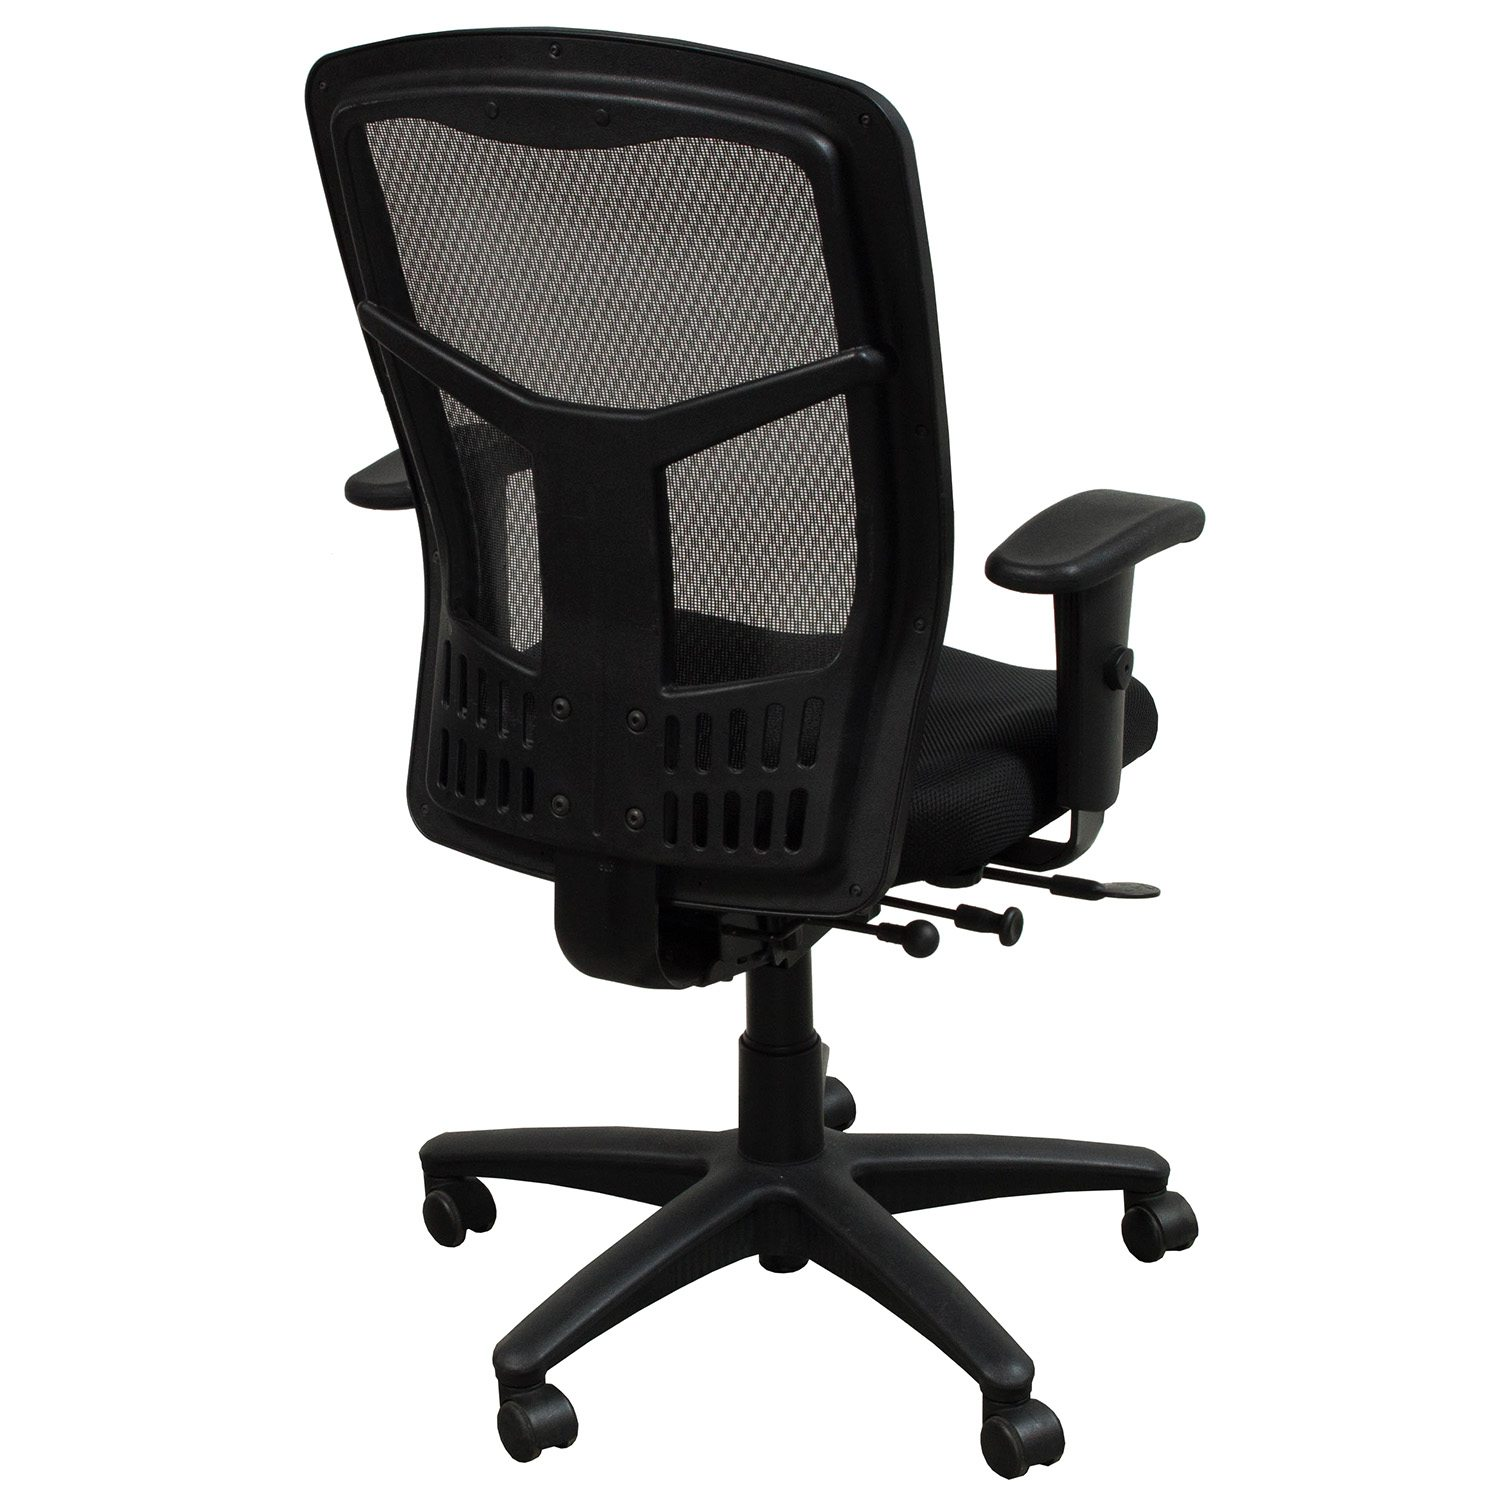 mesh back chairs for office round rattan chair with cushion star products progrid used task